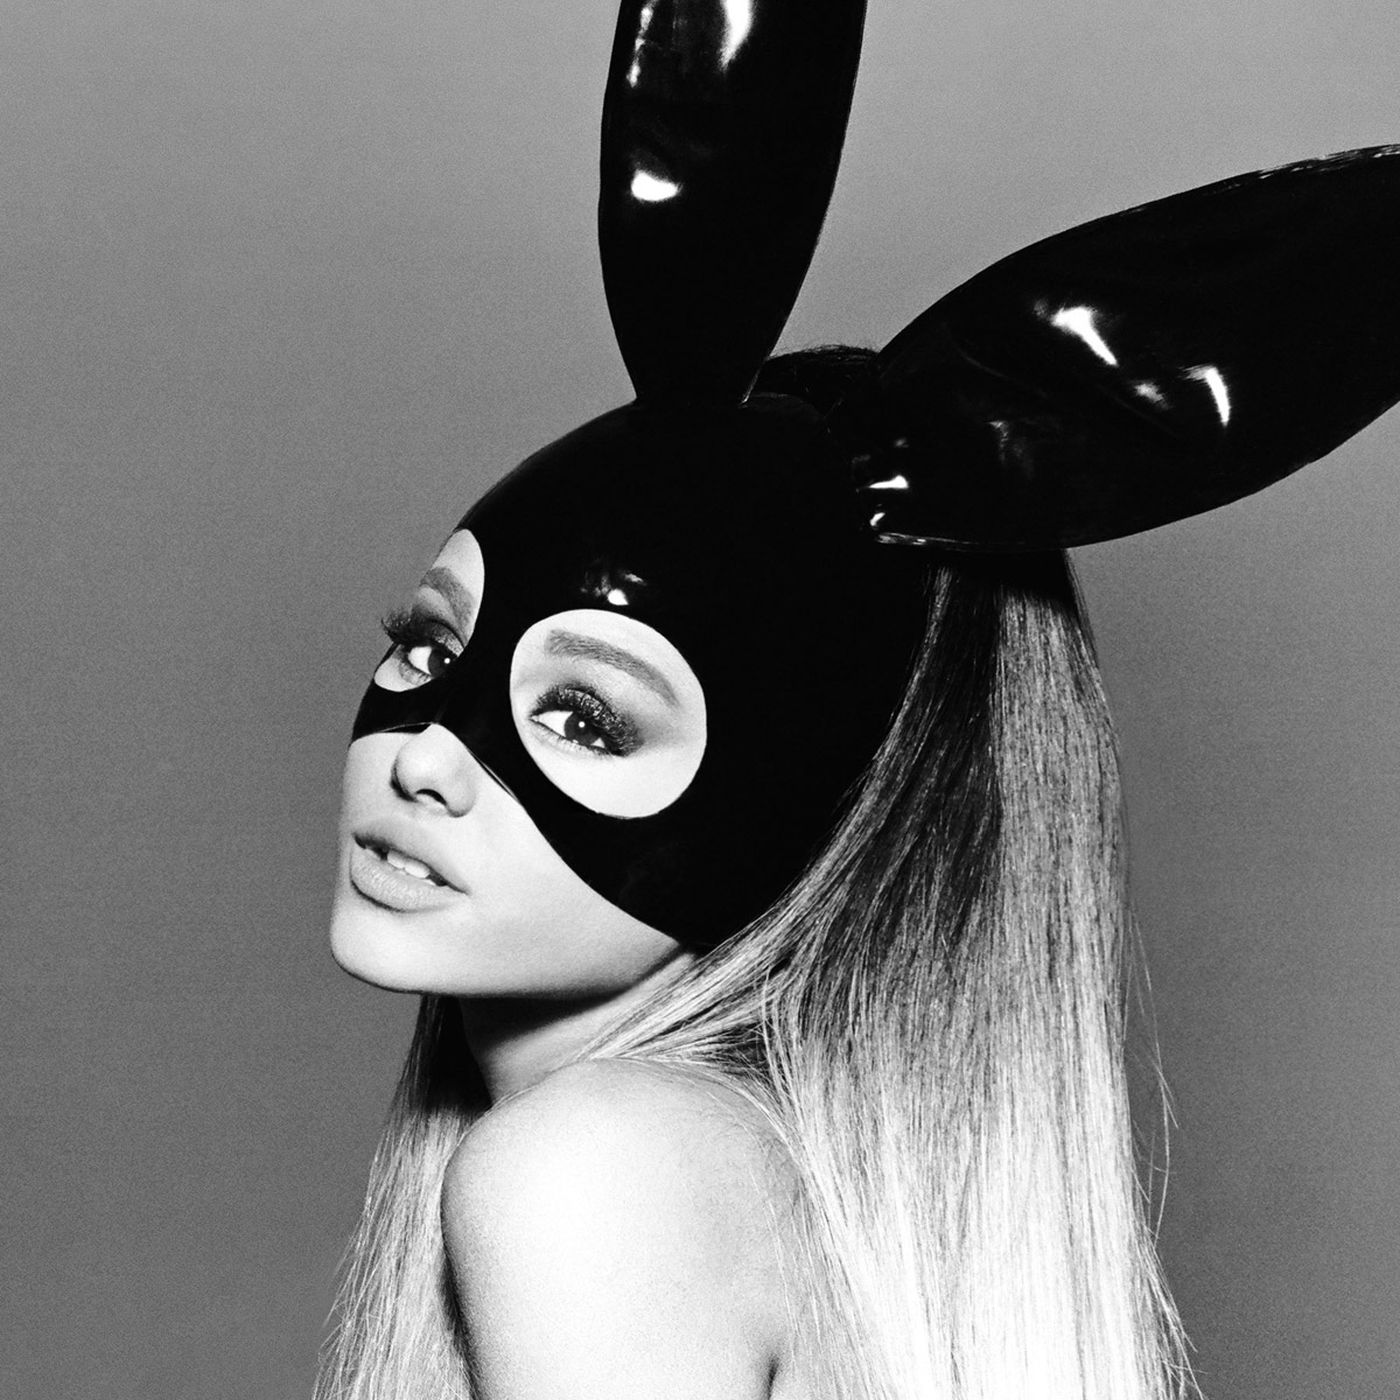 Ariana Grande to be guest character in Final Fantasy mobile